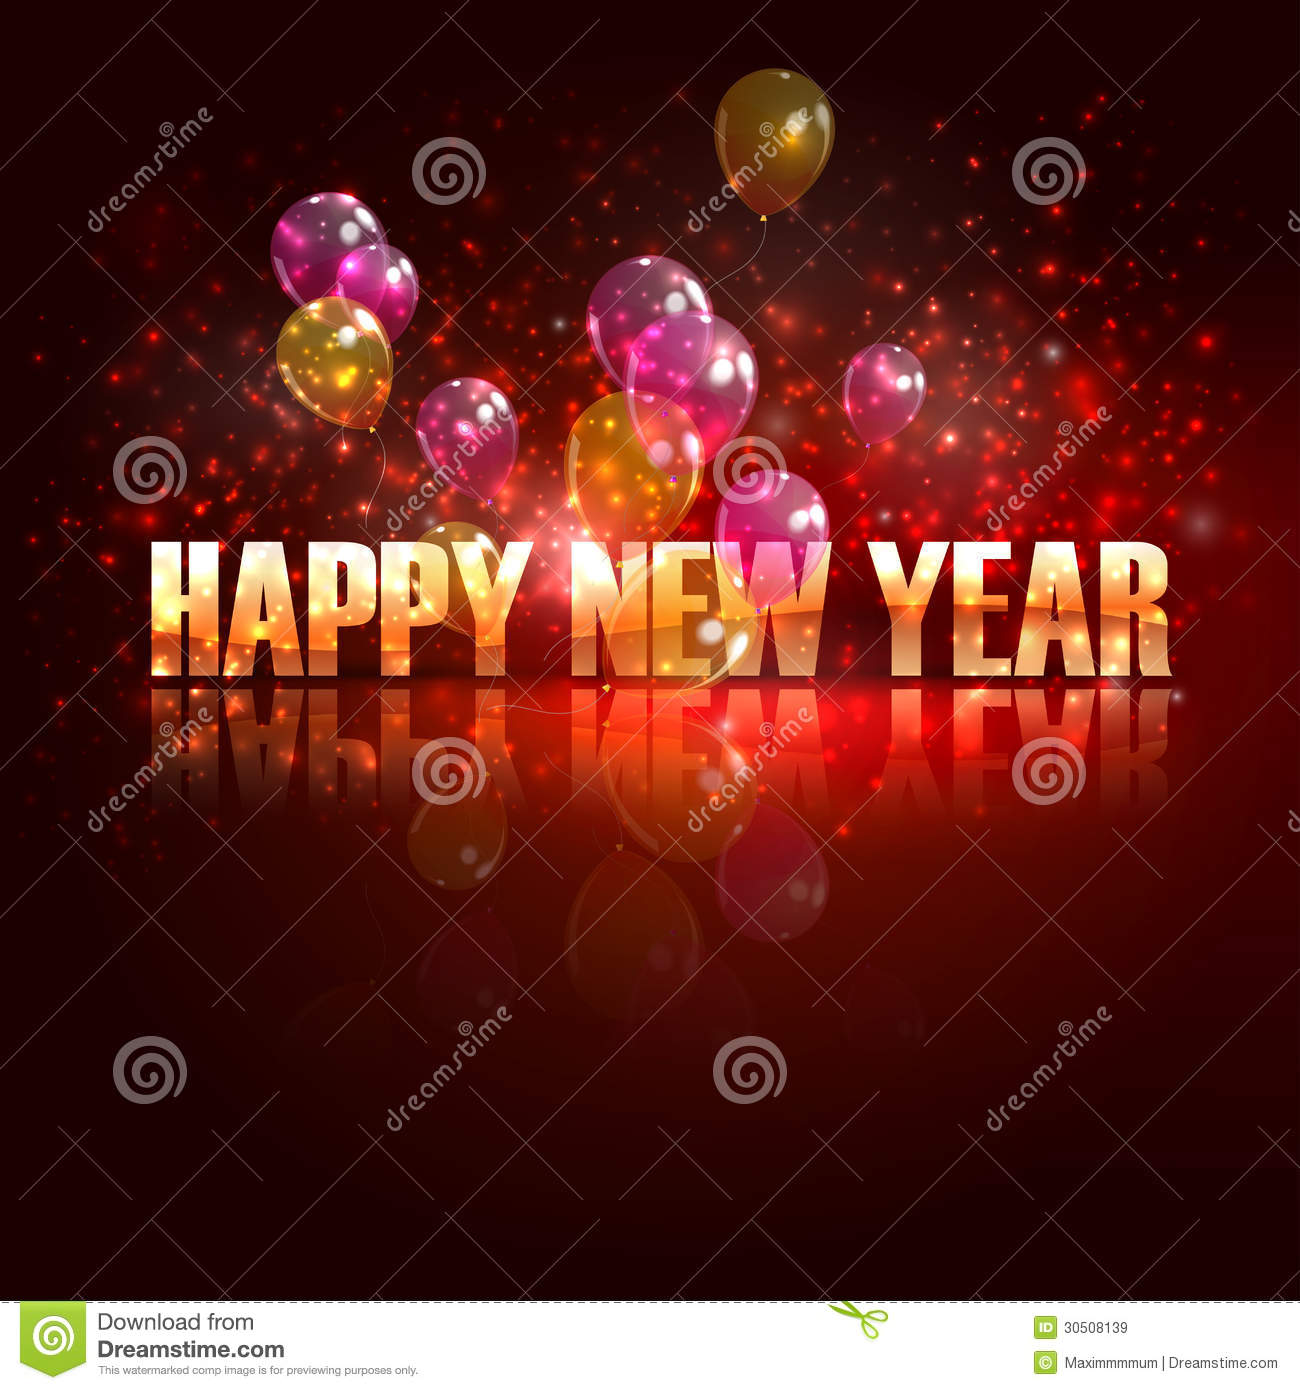 Happy new year. holiday background with balloons